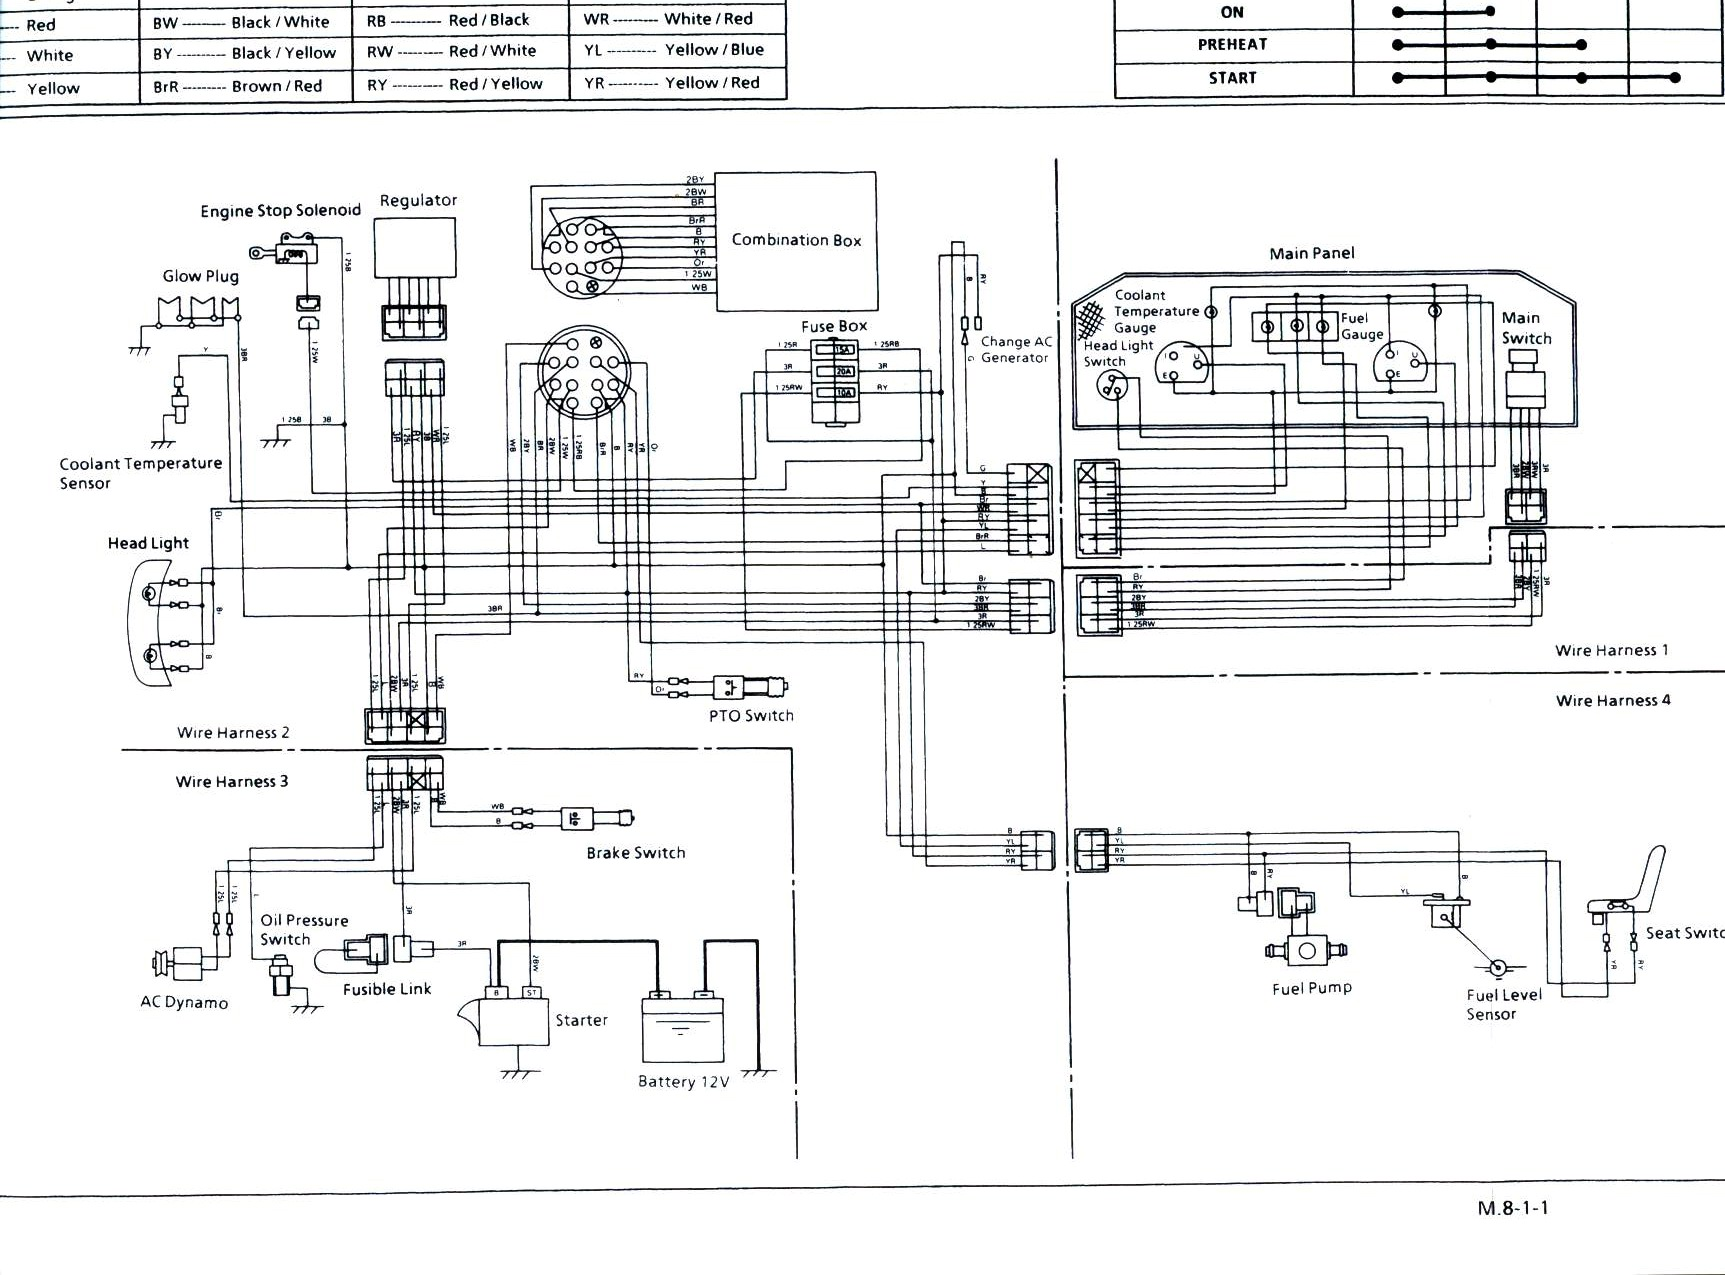 need a g1900s wiring diagram - mytractorforum - the, Wiring diagram